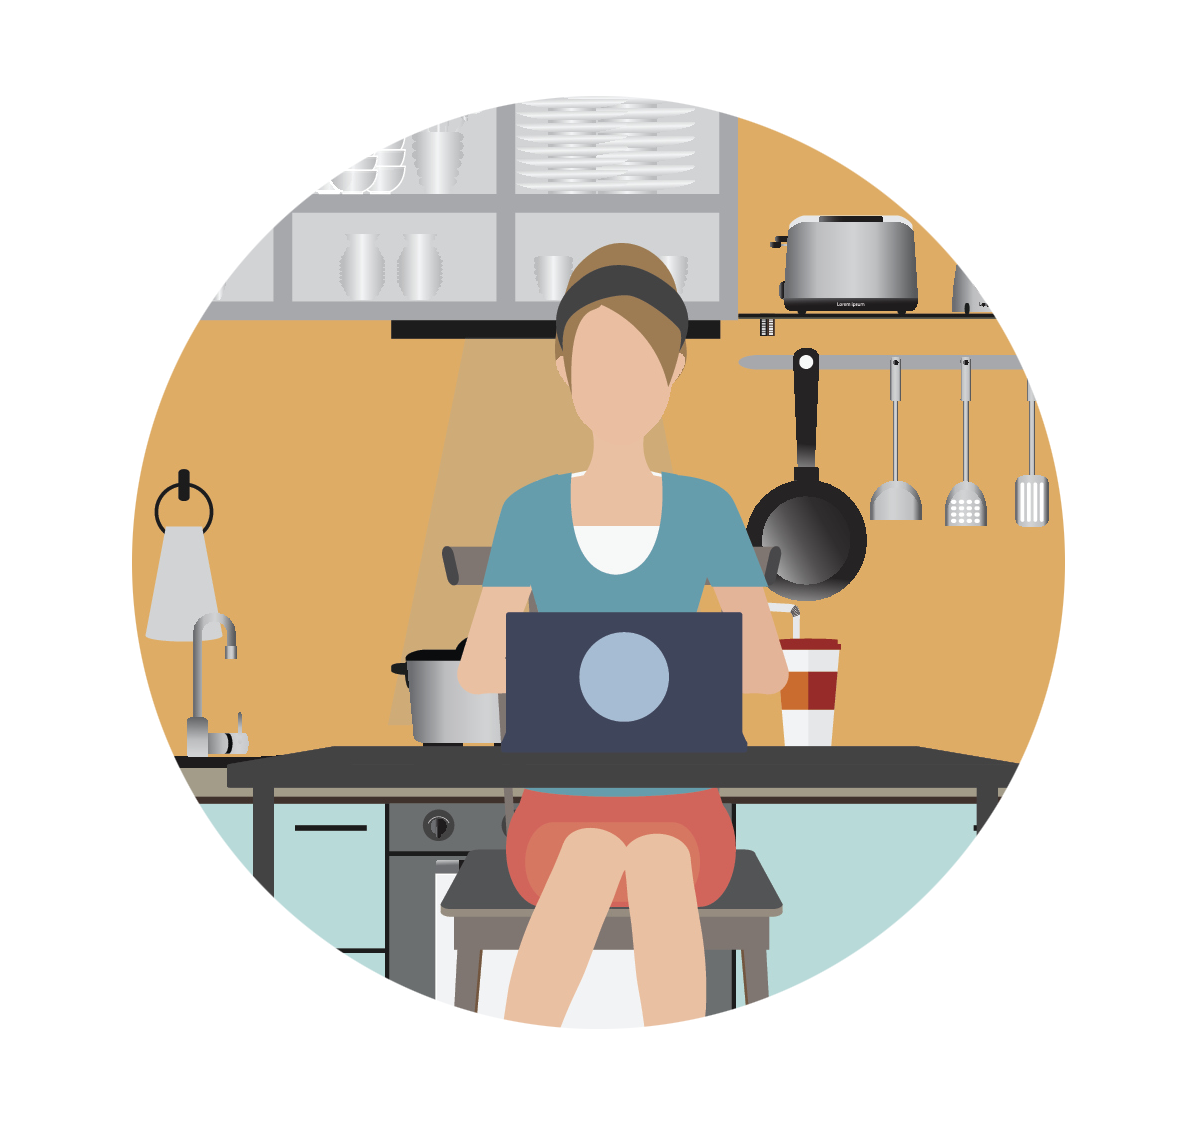 Employee clipart receptionist. Transitioning to a virtual